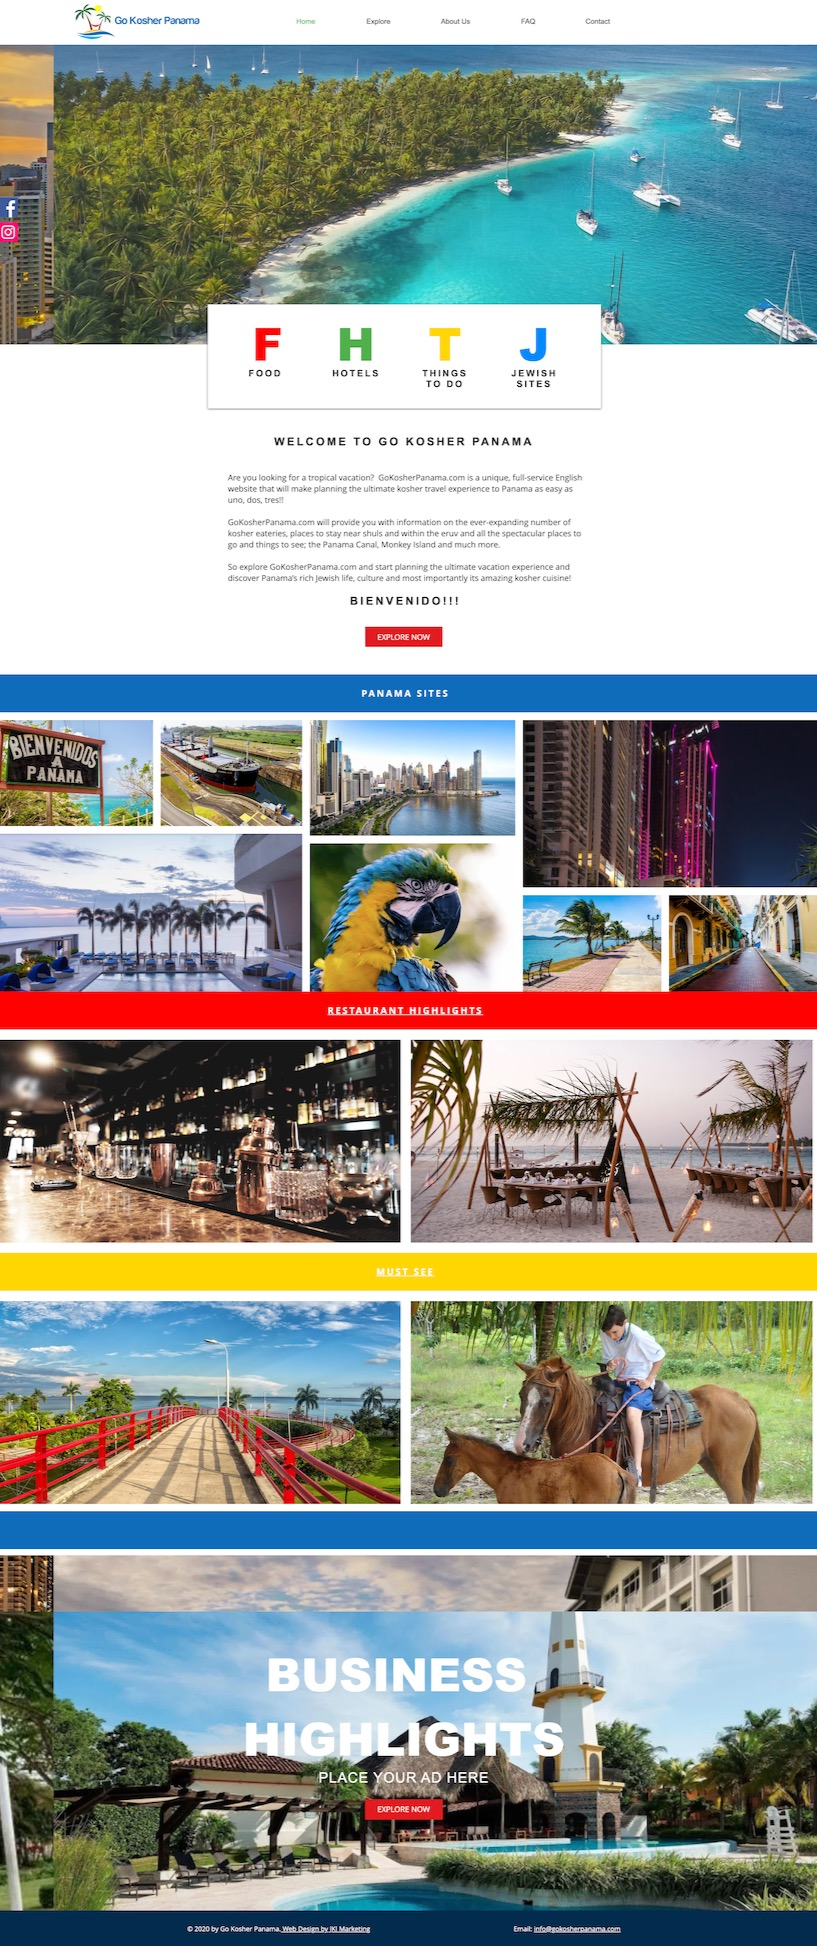 Website For Go Cosher Panama